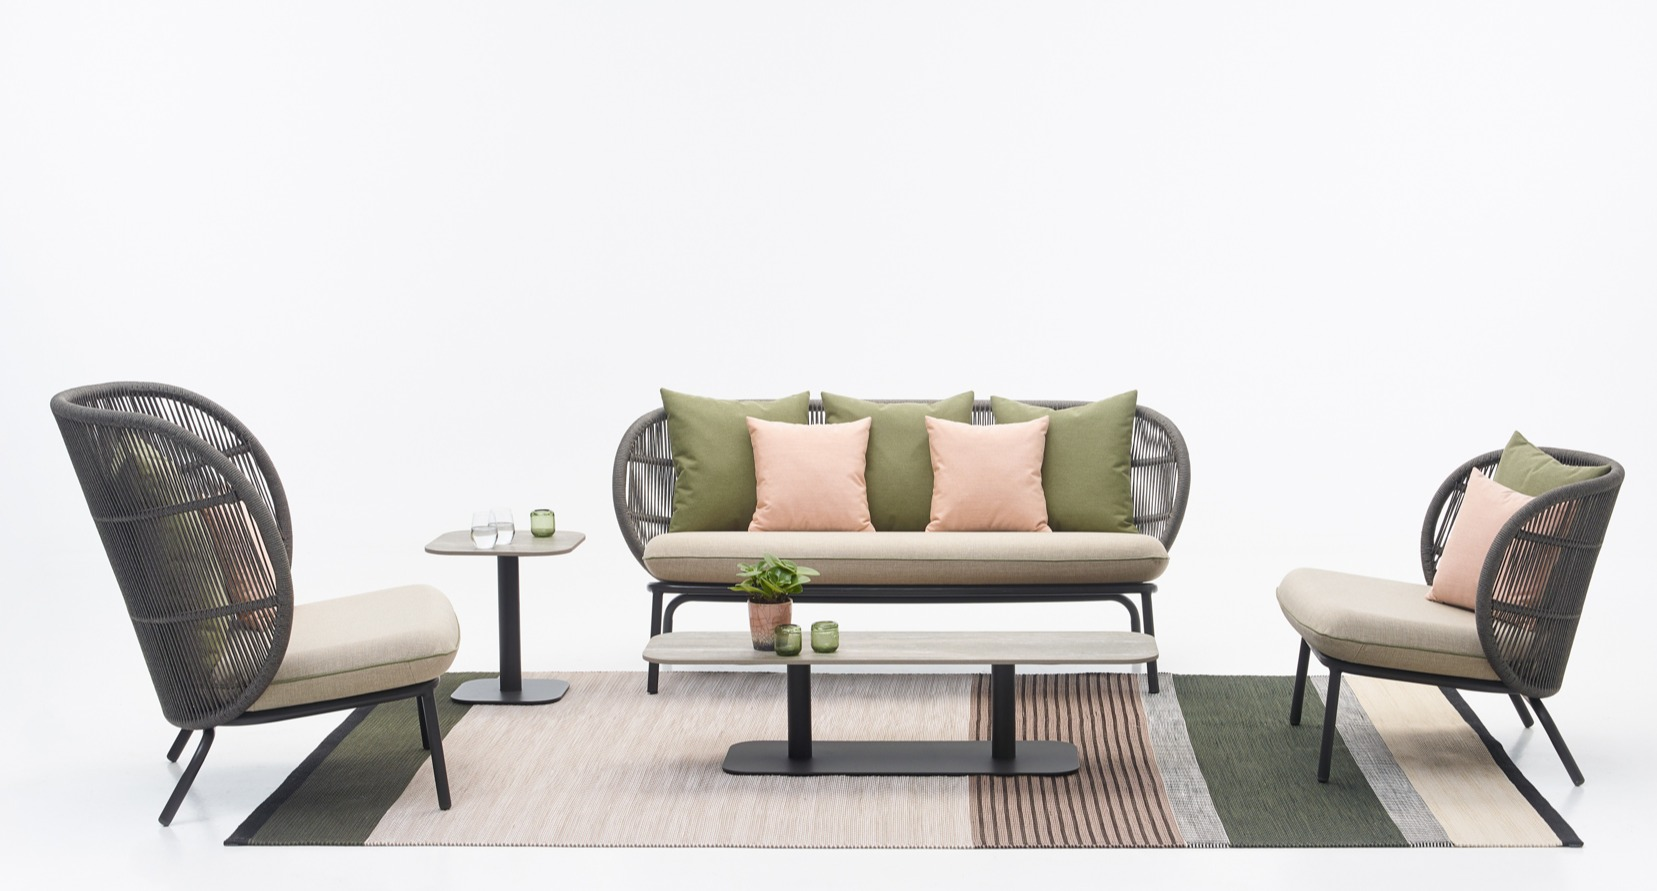 Kodo sofa set